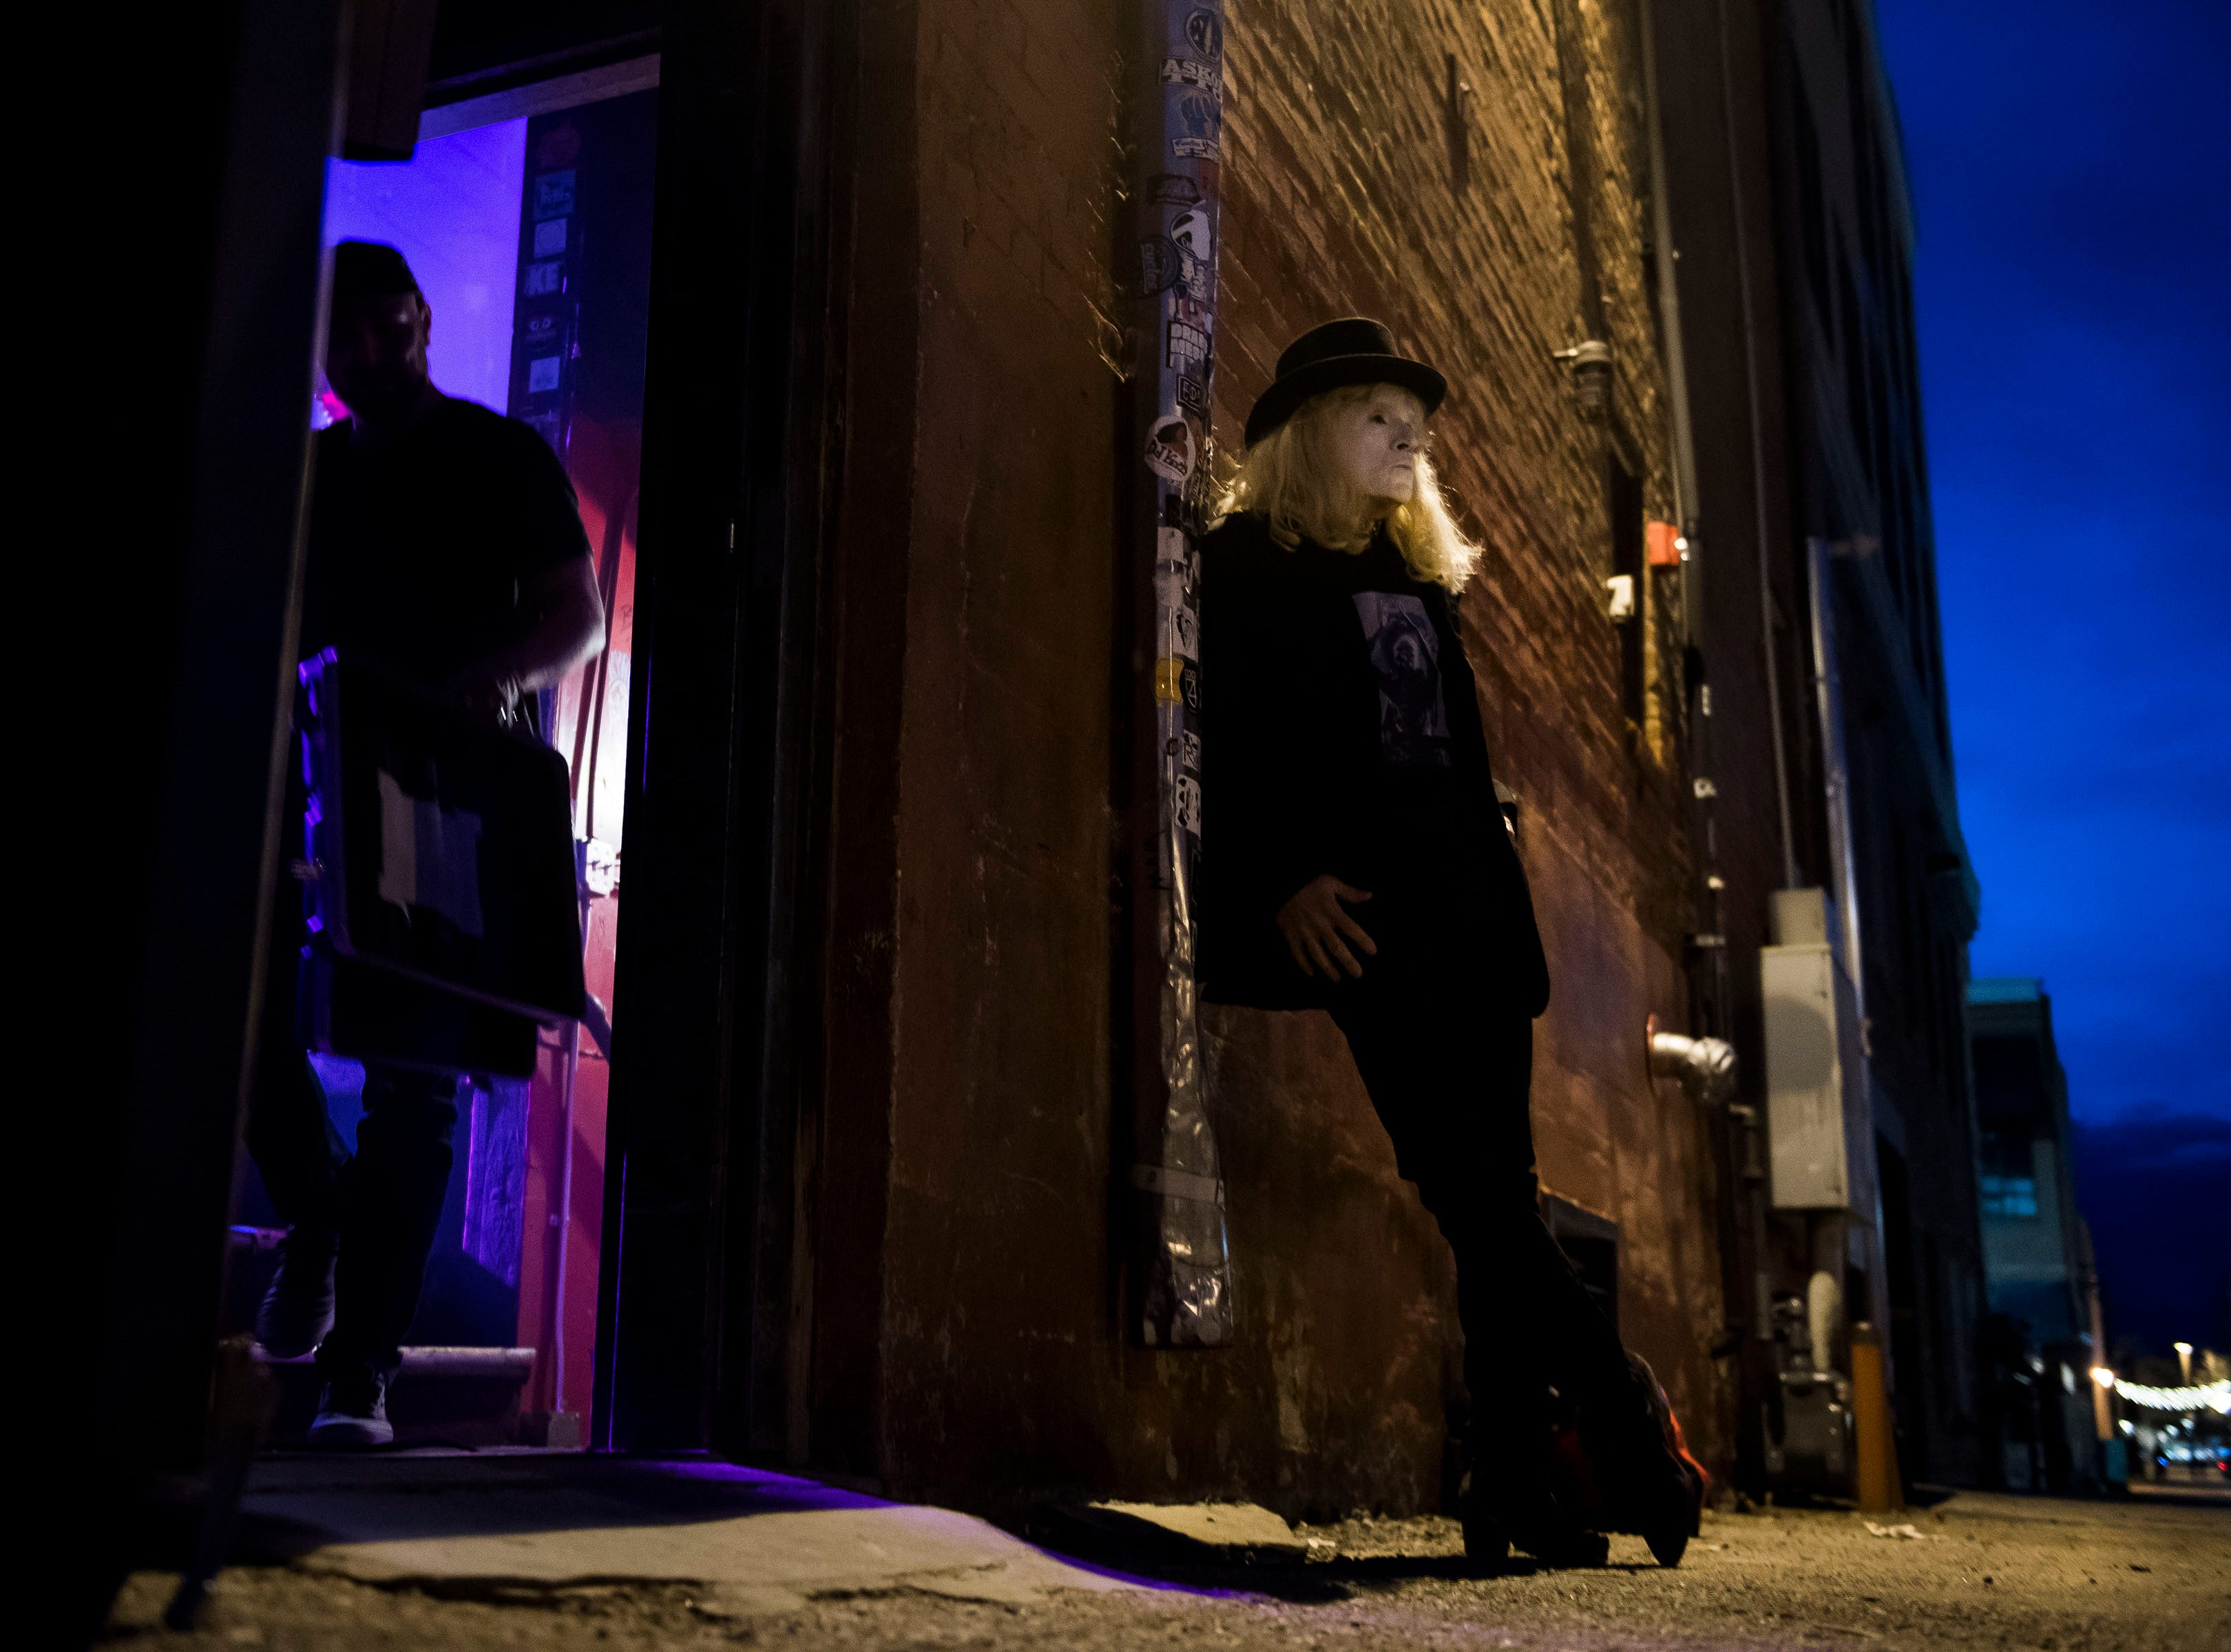 The Velveteers' Ozzie leans against the wall at the back alley entrance of The Aggie Theatre while waiting to take the stage during the FoCoMX XI music festival on Friday, April 26, 2019, in Fort Collins, Colo.